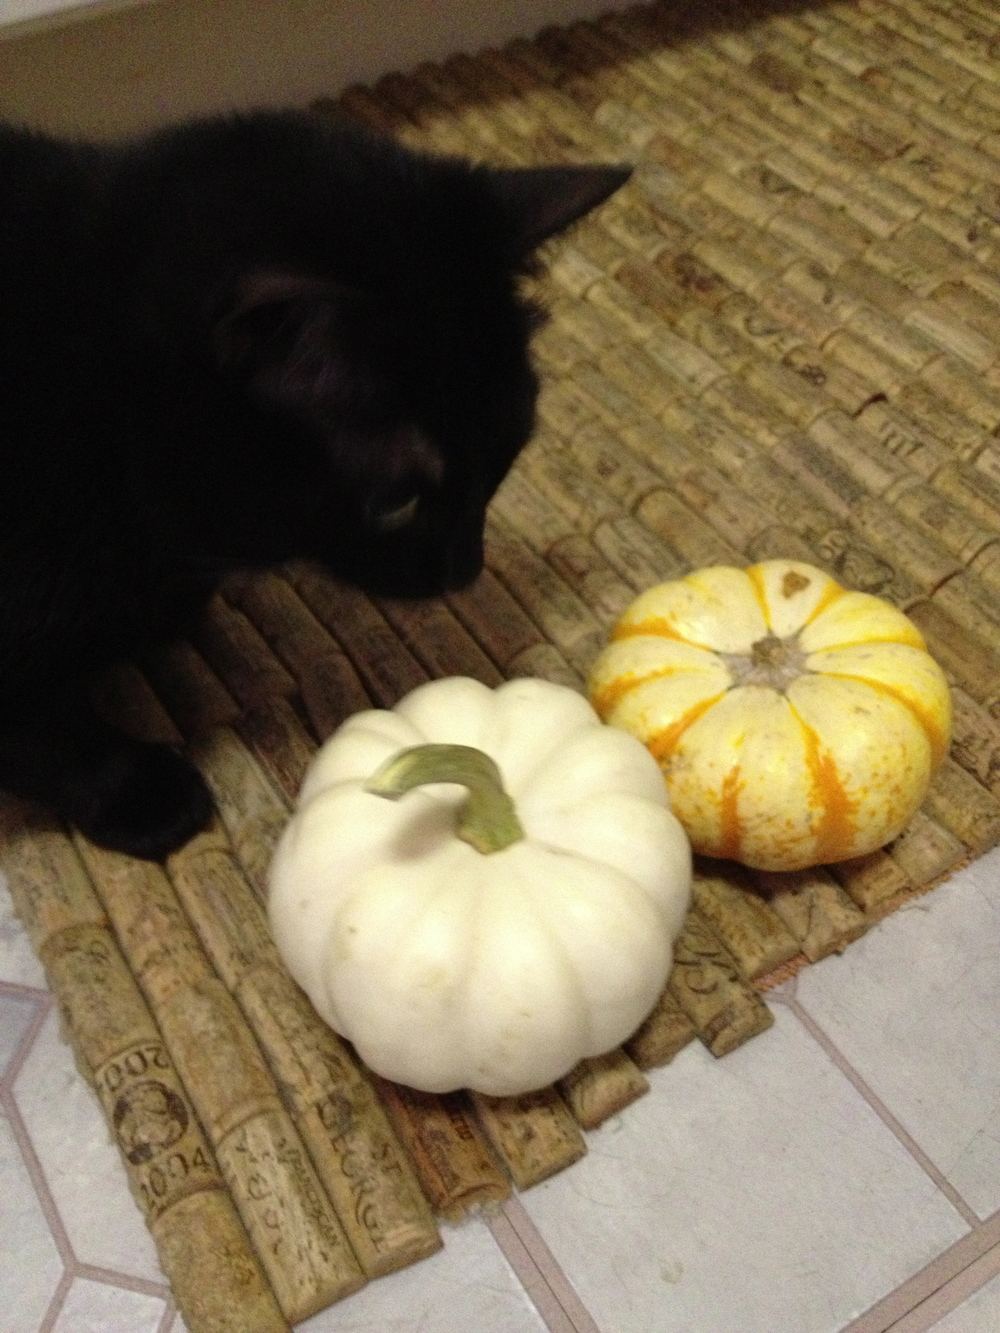 if you don't have opposable thumbs, no worries.  we can help you carve your masterpiece!